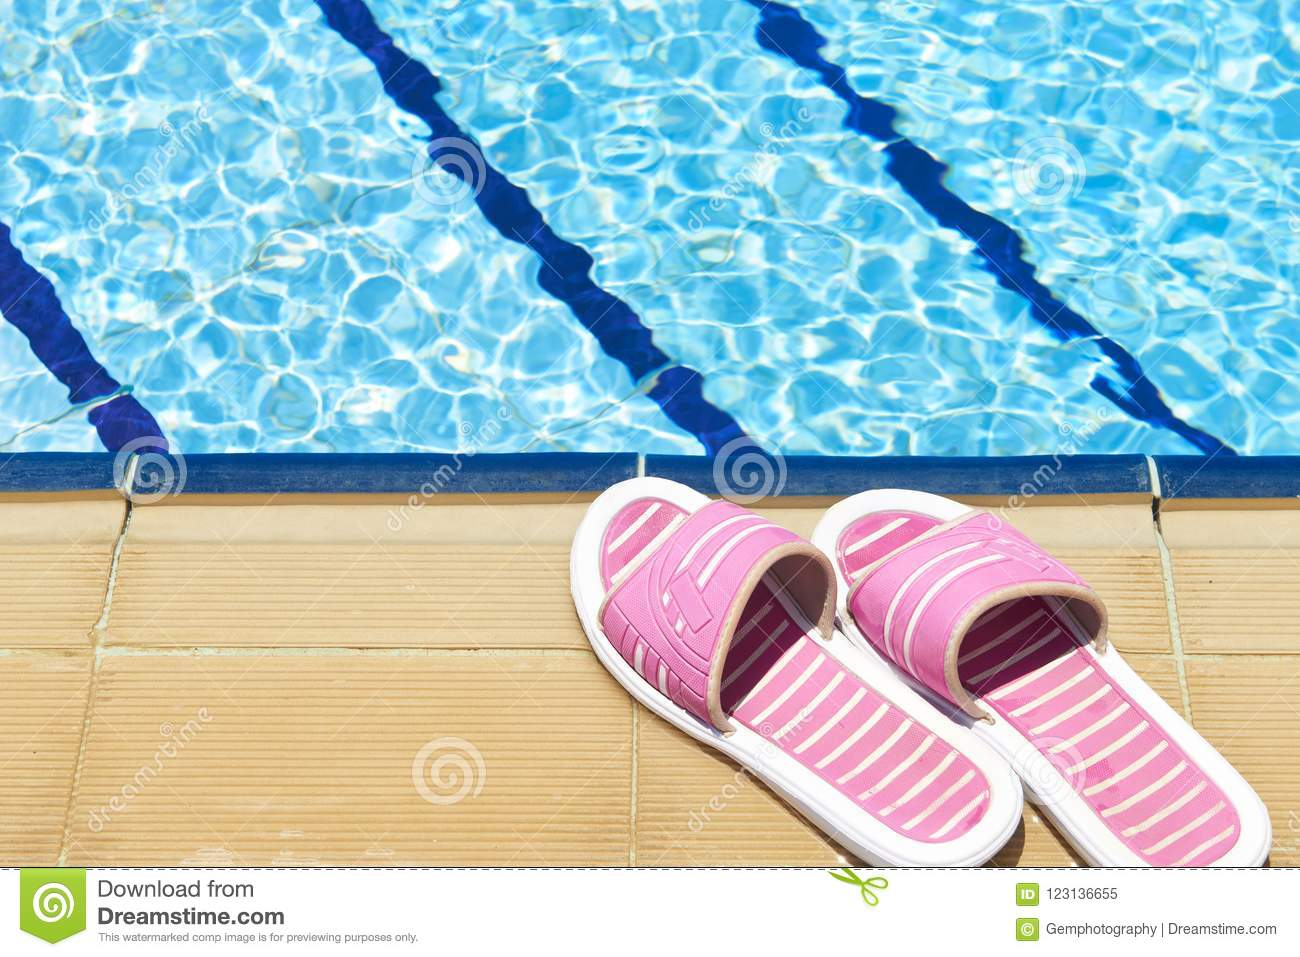 af27254a7215a A pair of womens plastic sandals by side of swimming pool